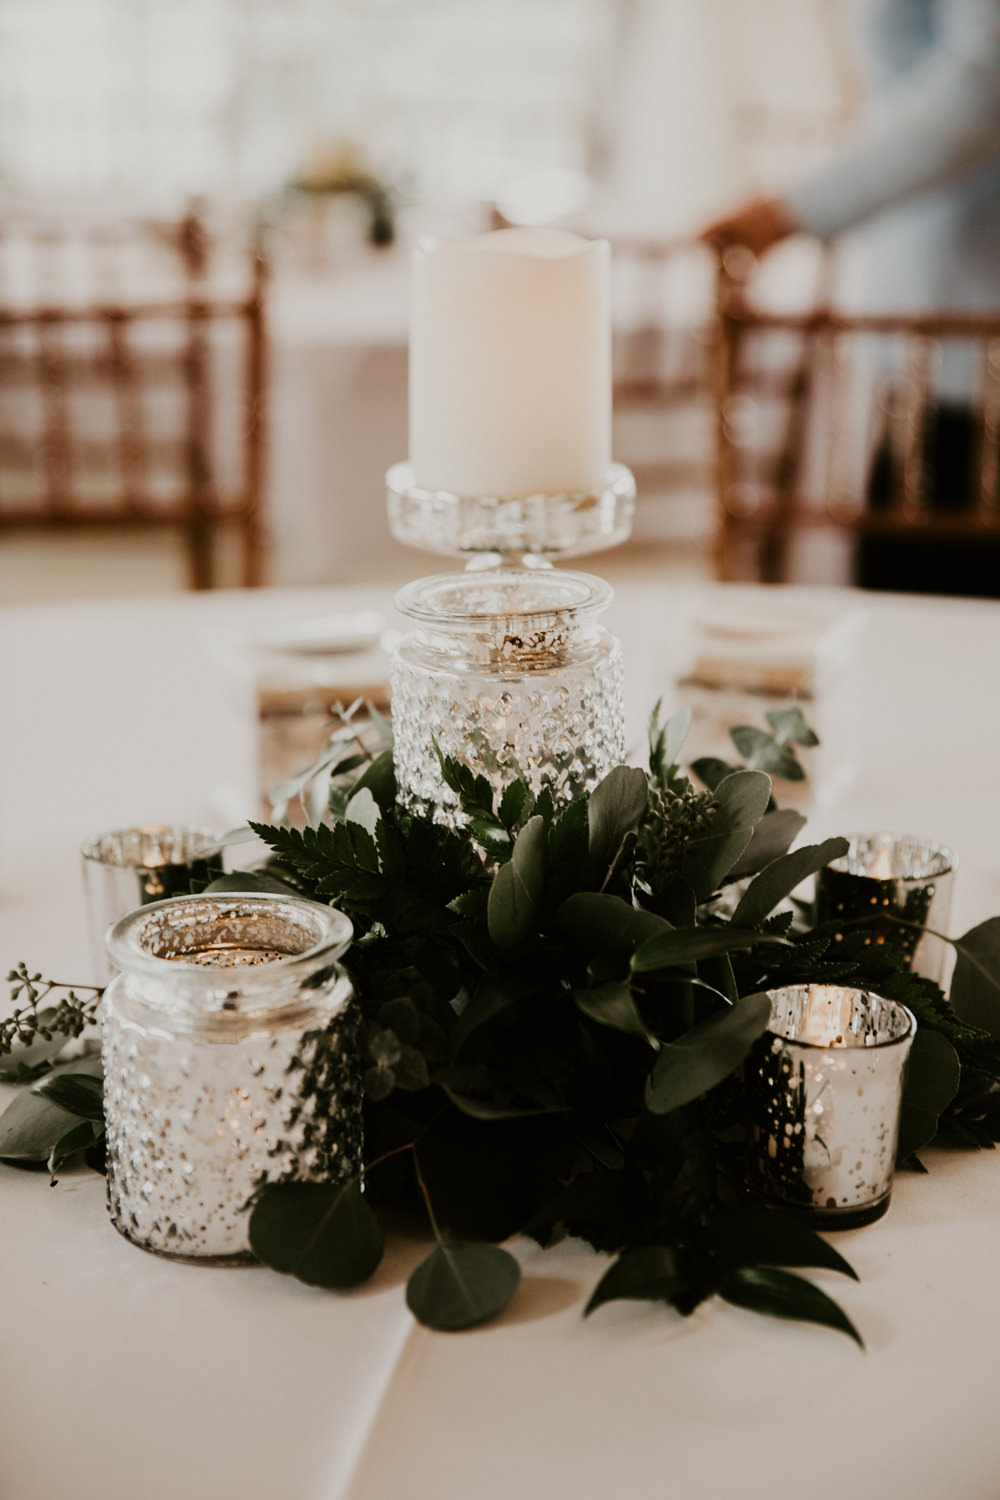 Candles and greenery modern wedding centerpiece